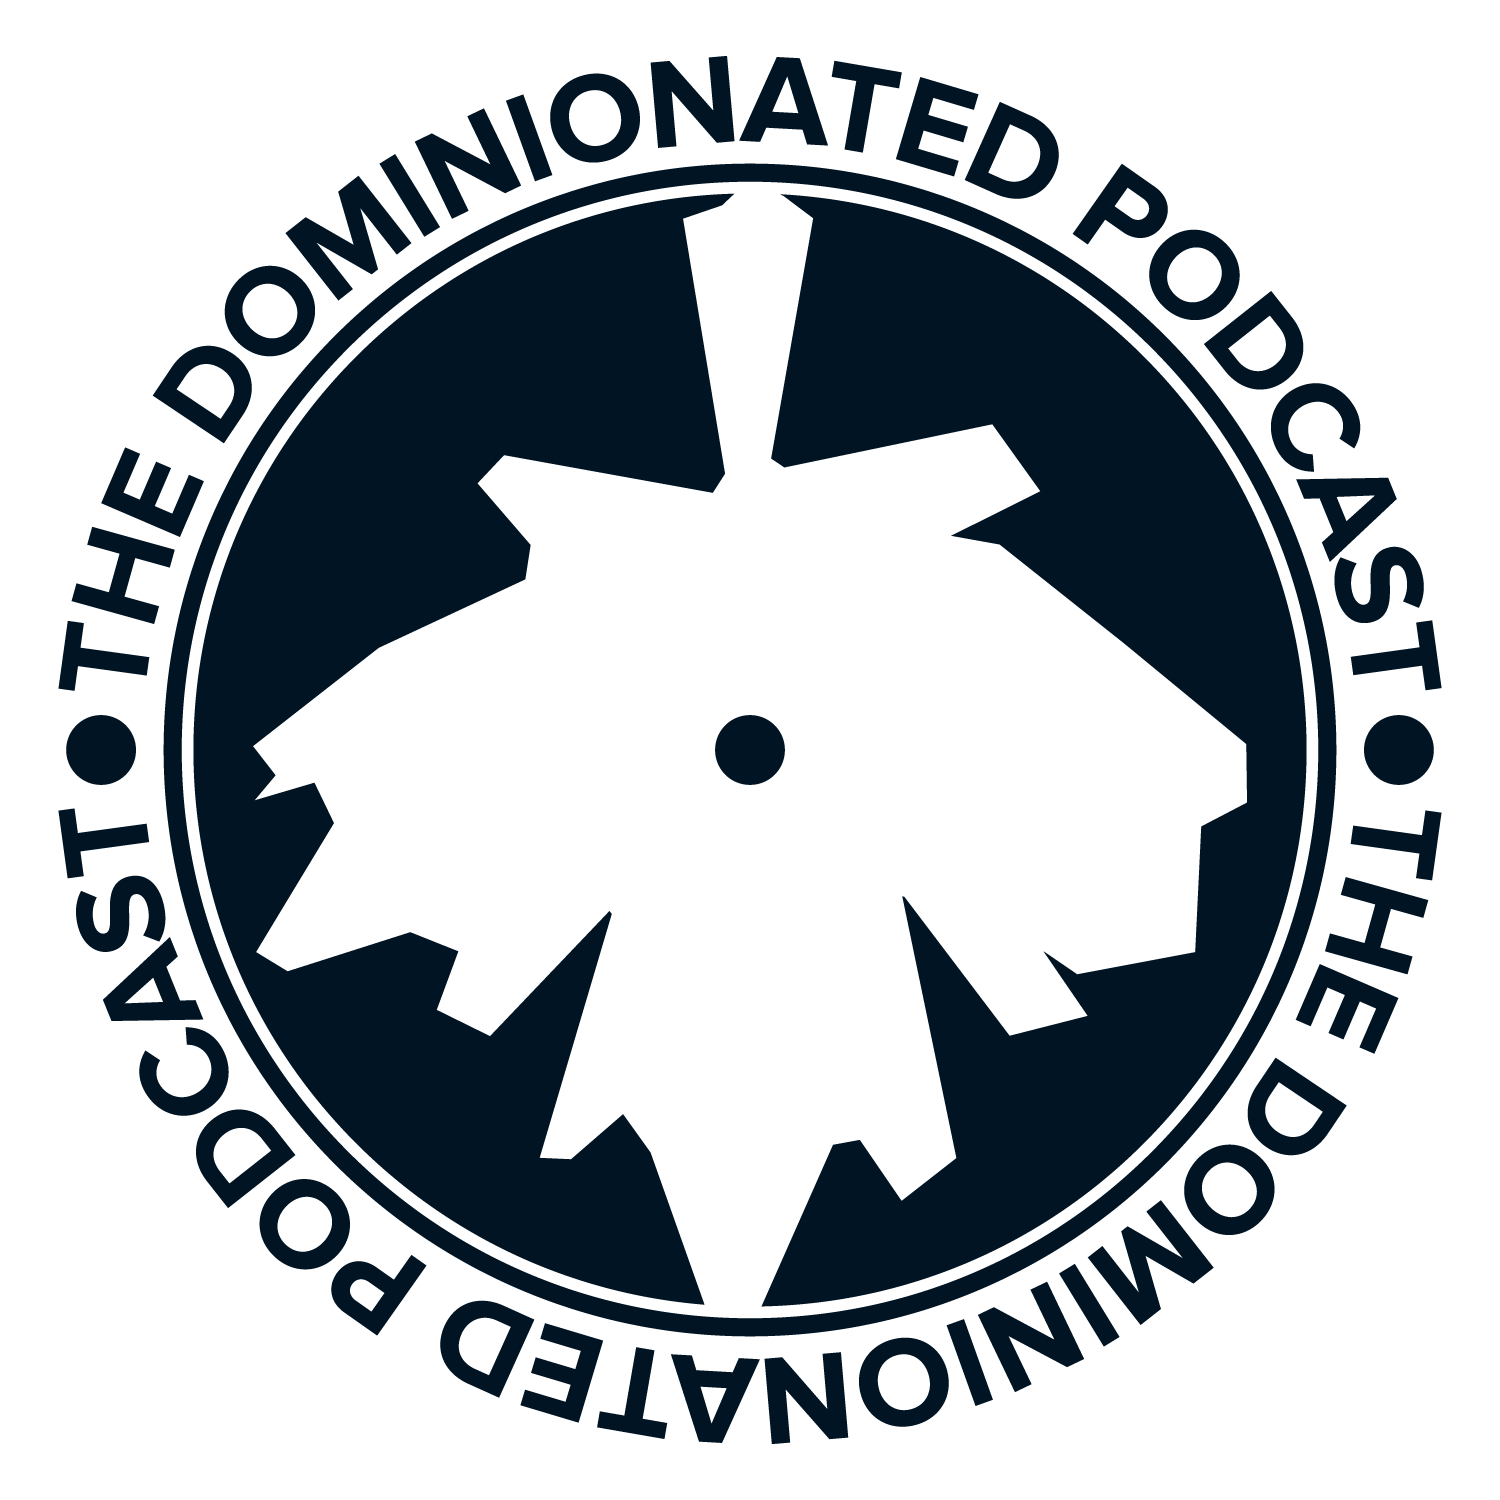 The Big Shiny Dominionated Podcast